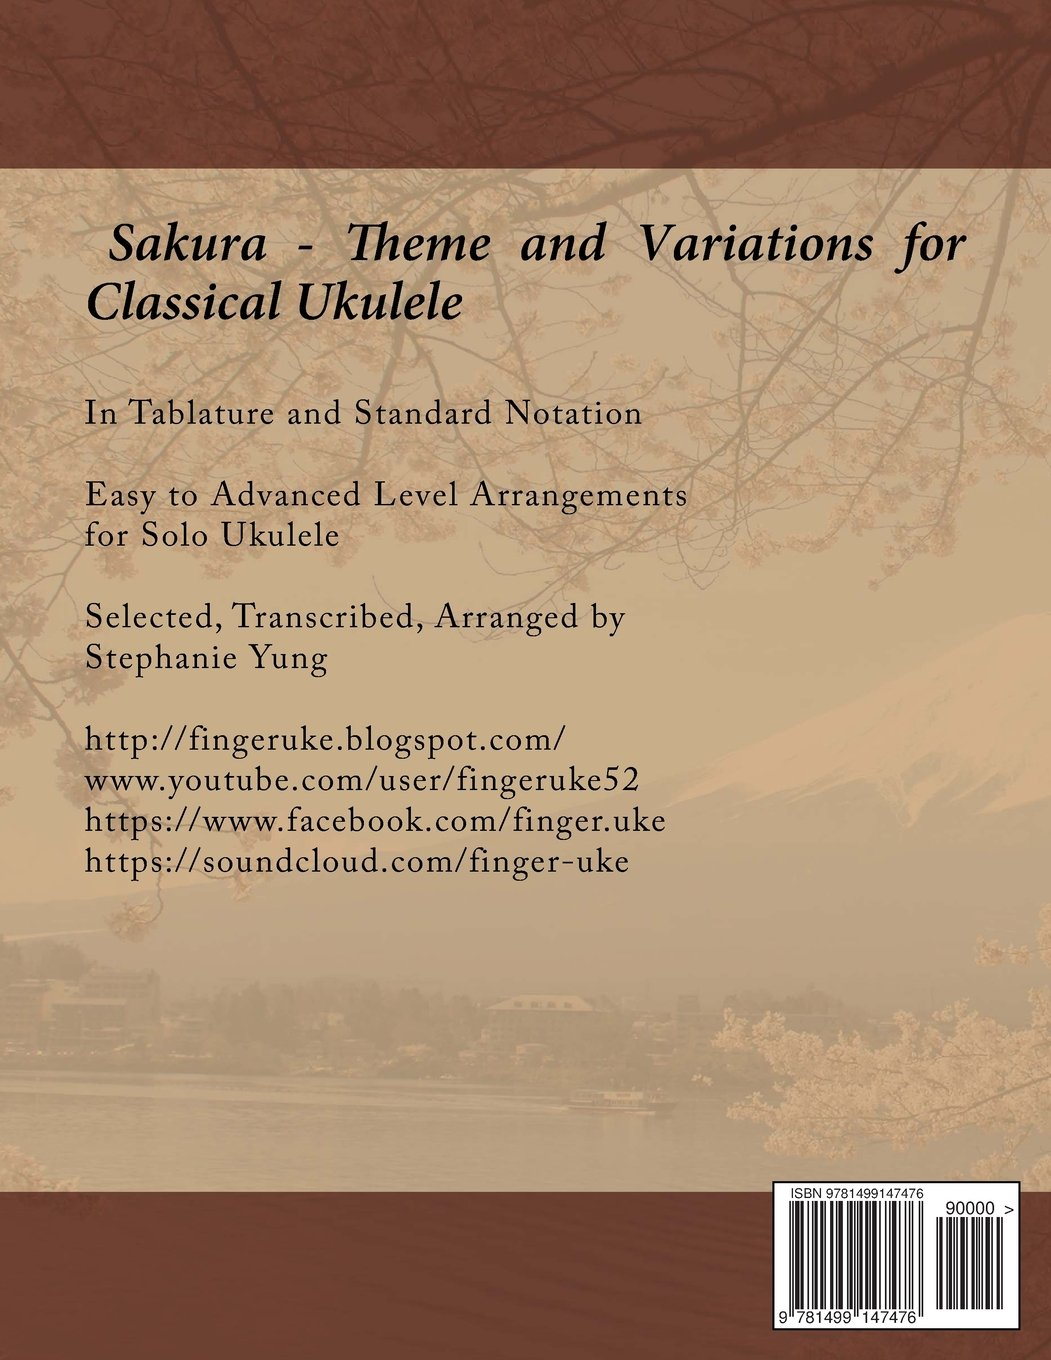 Amazon com: Sakura - Theme and Variations for Classical